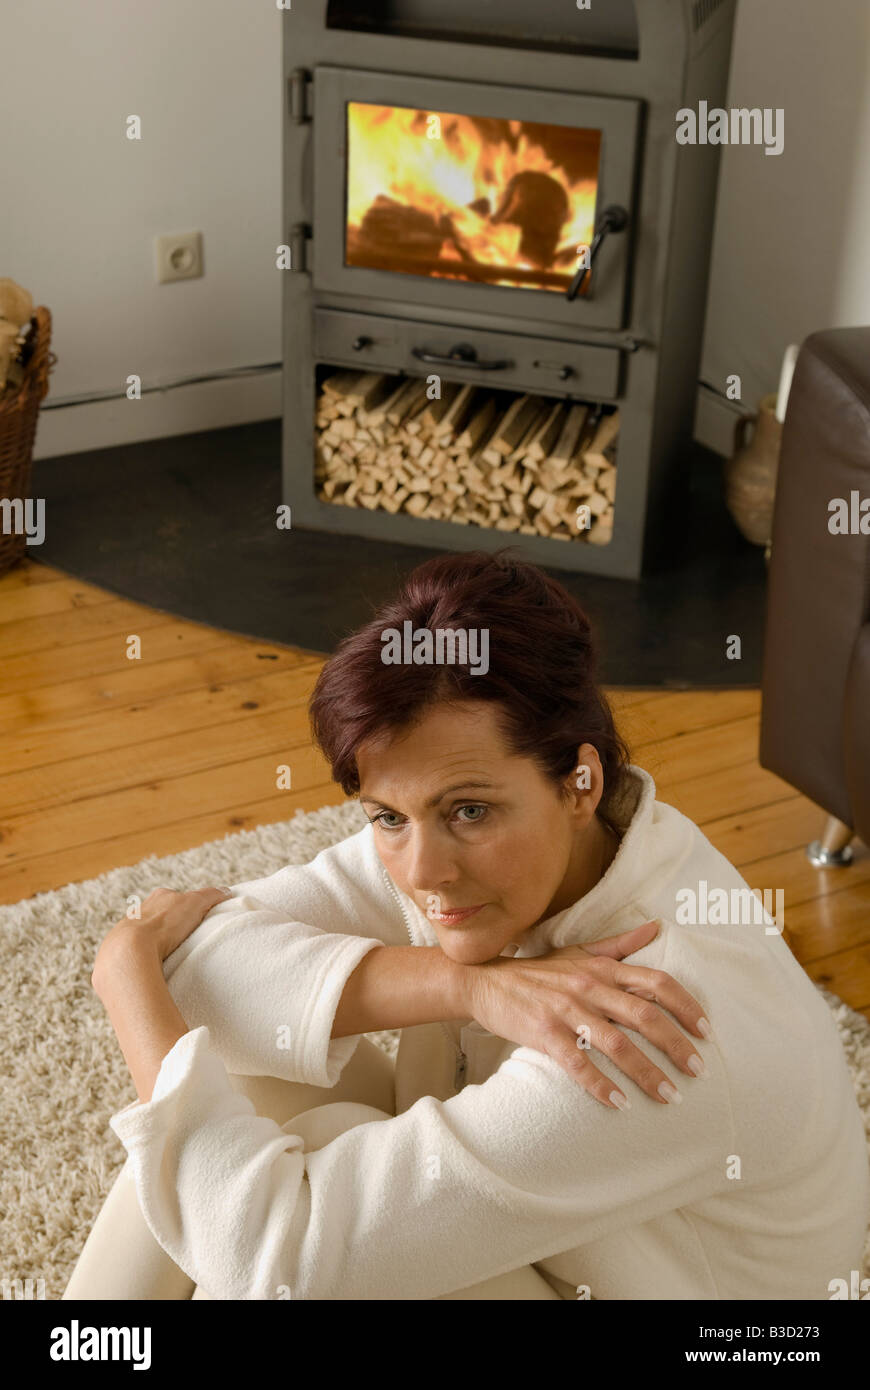 Brunette woman sitting in living room, elevated view - Stock Image